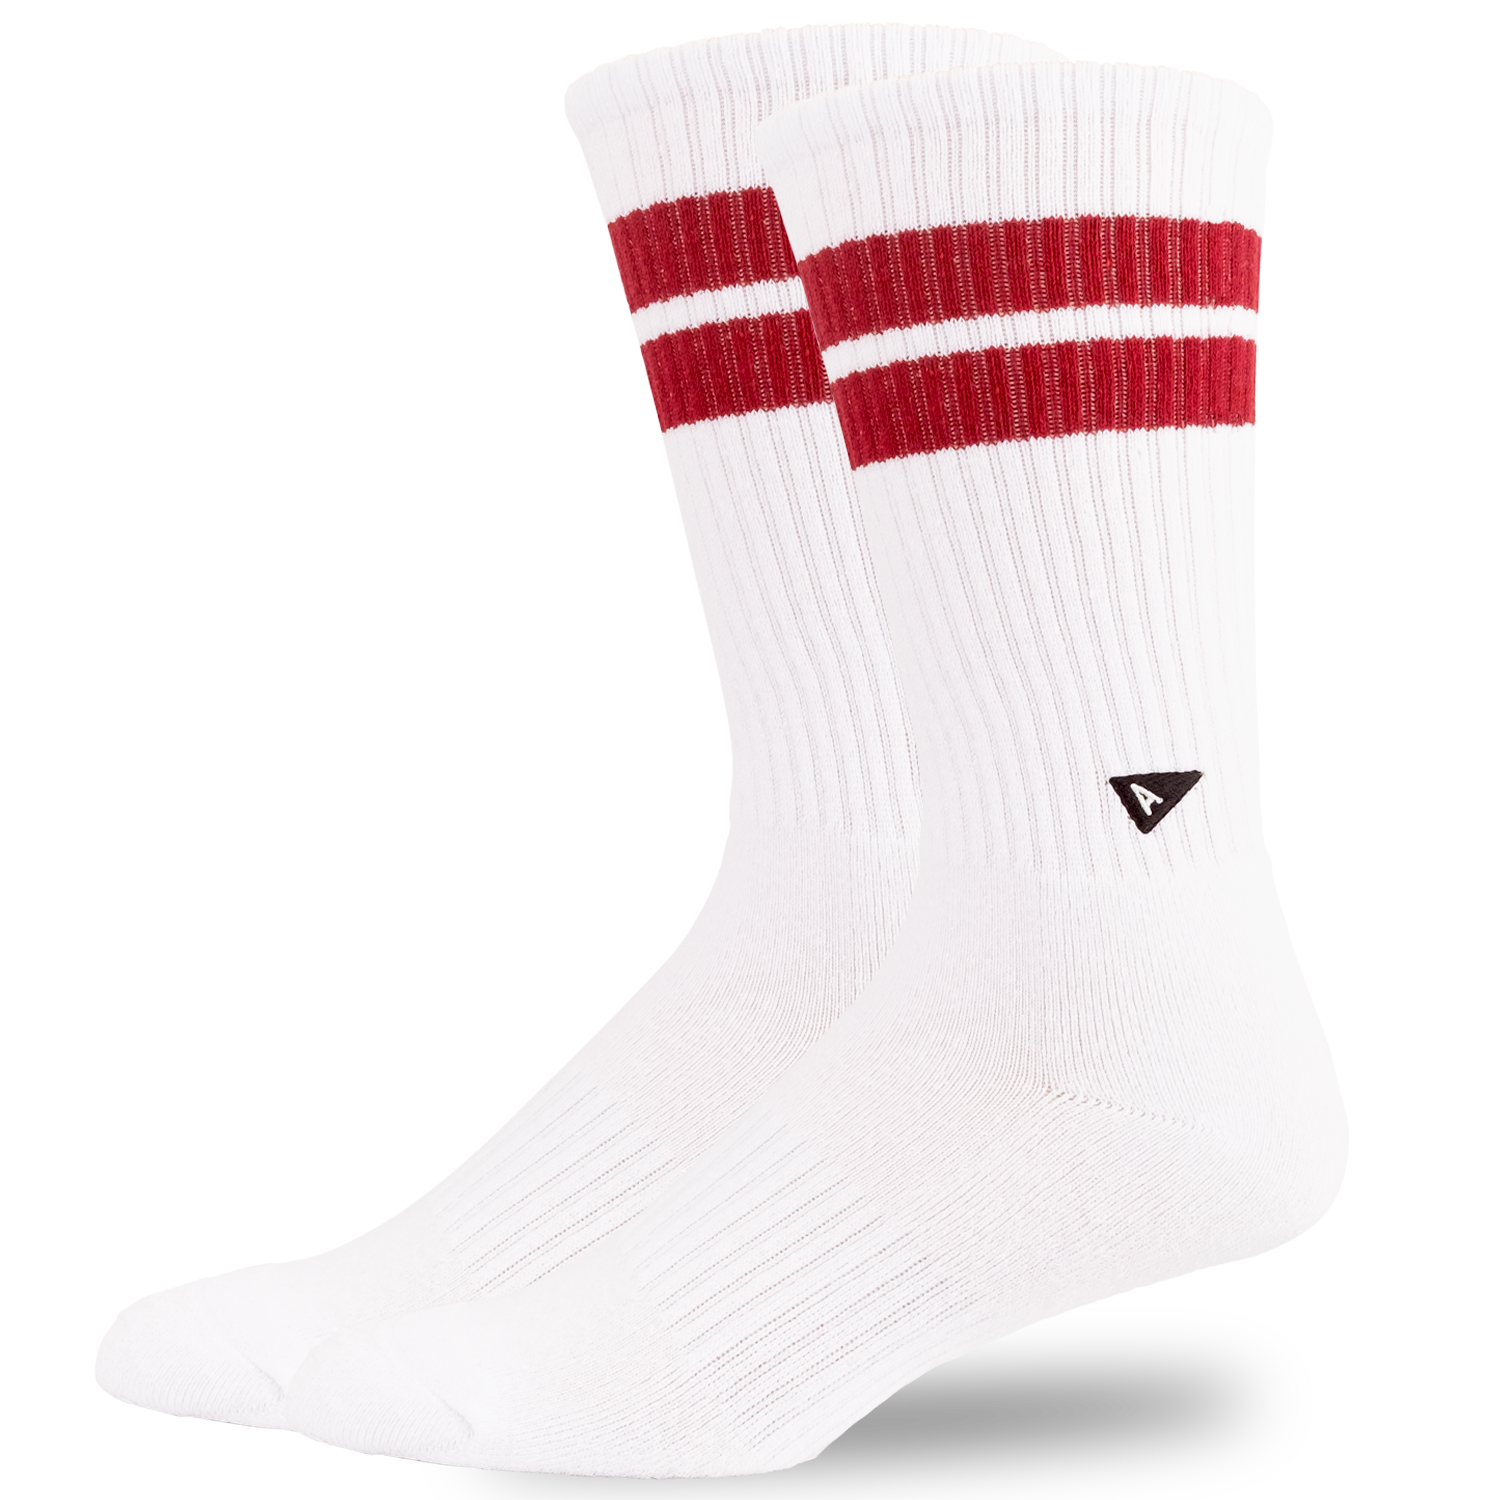 Arvin Goods Crew Sock Long - Retro Stripe - White / Burgundy